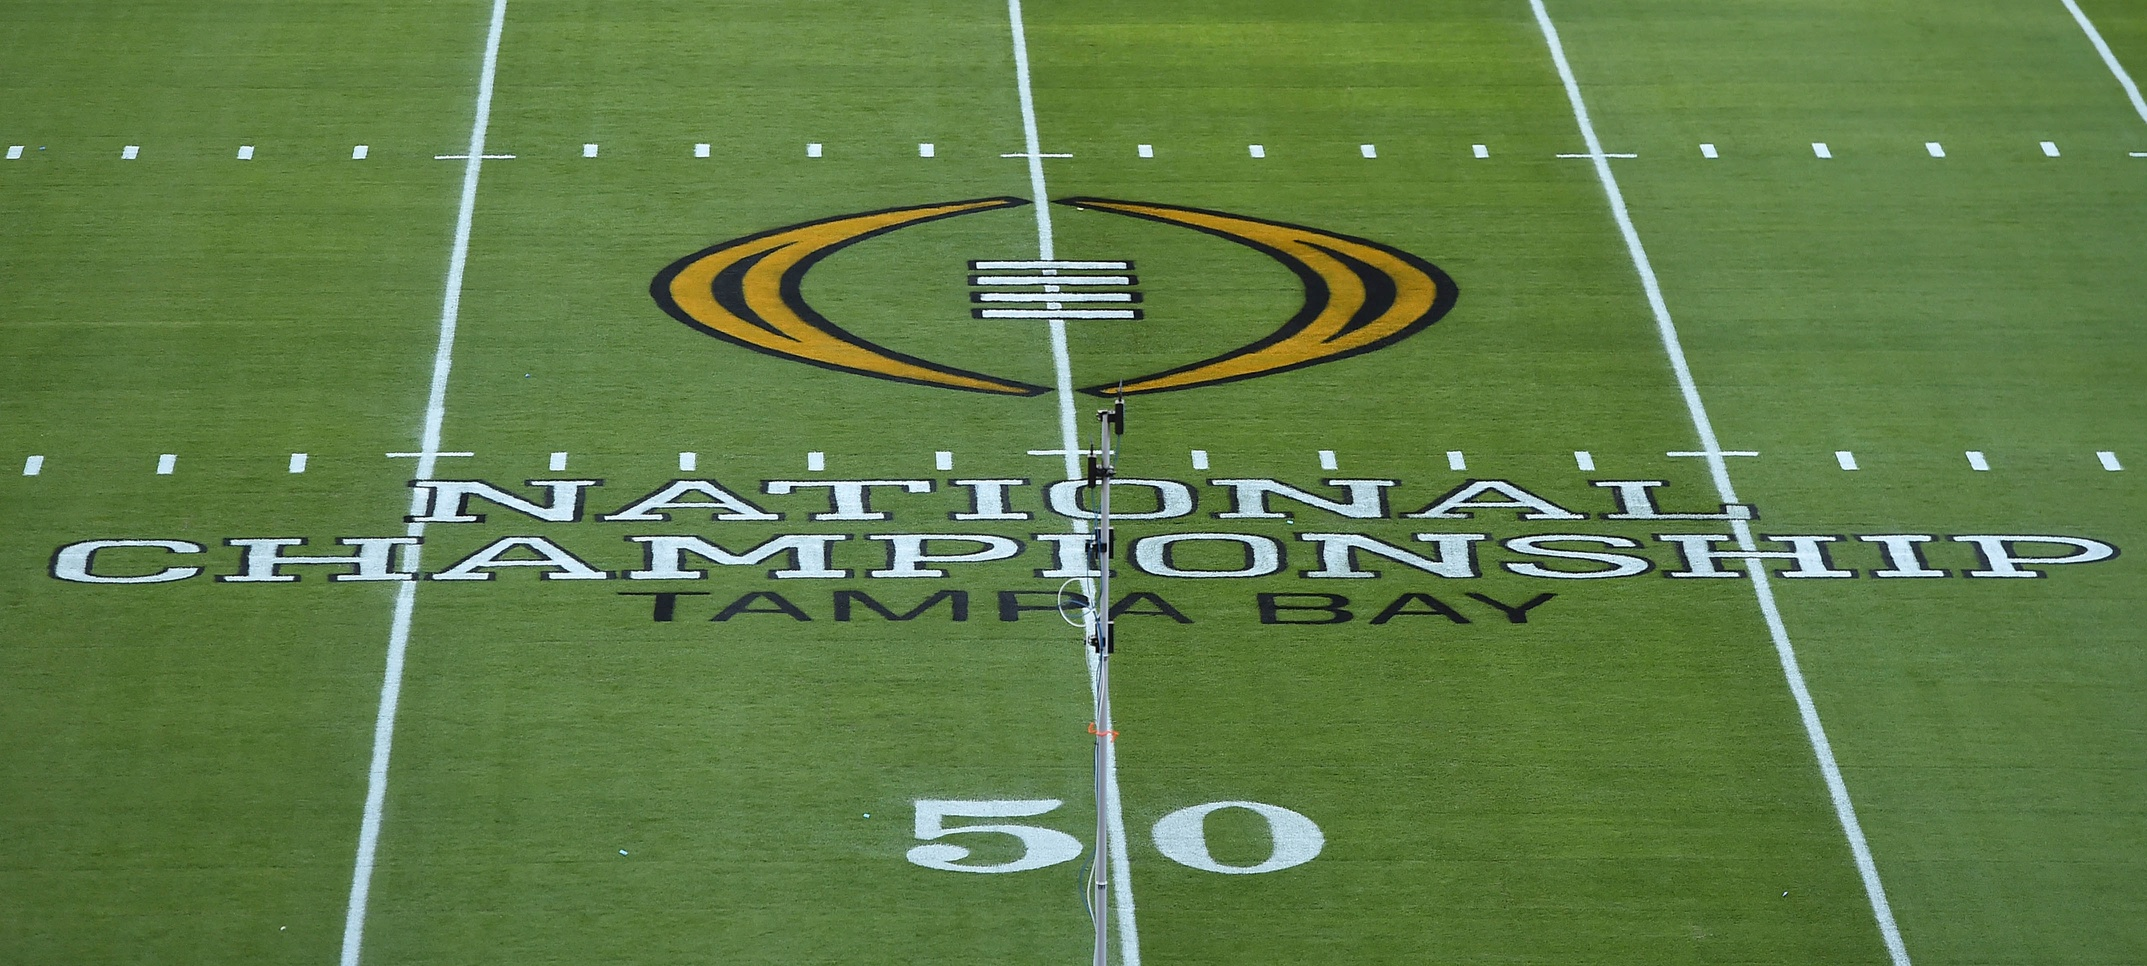 Jan 9, 2017; Tampa, FL, USA; A general view of the logo on the field before the 2017 College Football Playoff National Championship Game between the Alabama Crimson Tide and the Clemson Tigers at Raymond James Stadium. Mandatory Credit: Jasen Vinlove-USA TODAY Sports